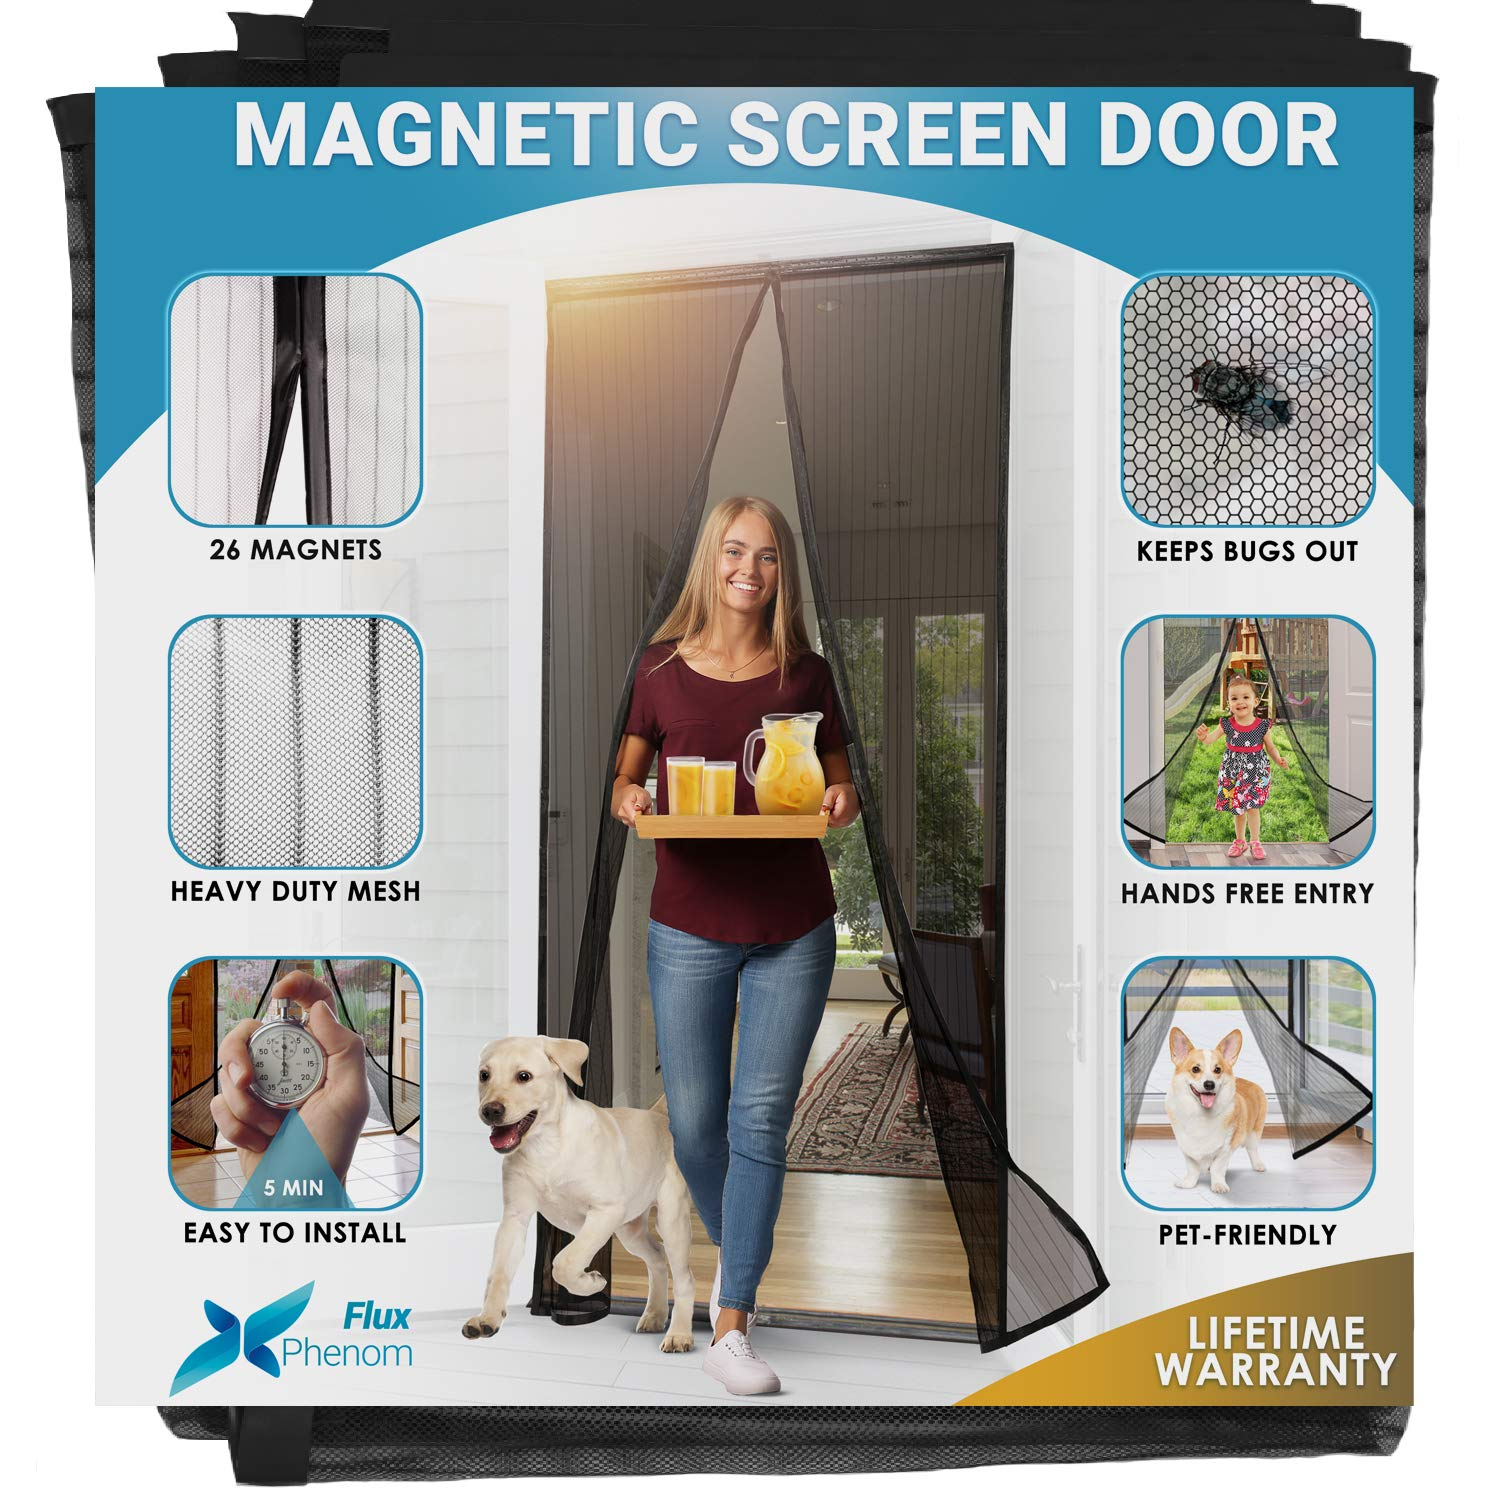 Flux Phenom Reinforced Magnetic Screen Door - Fits Doors up to 38 x 82 Inches (Black) by Flux Phenom